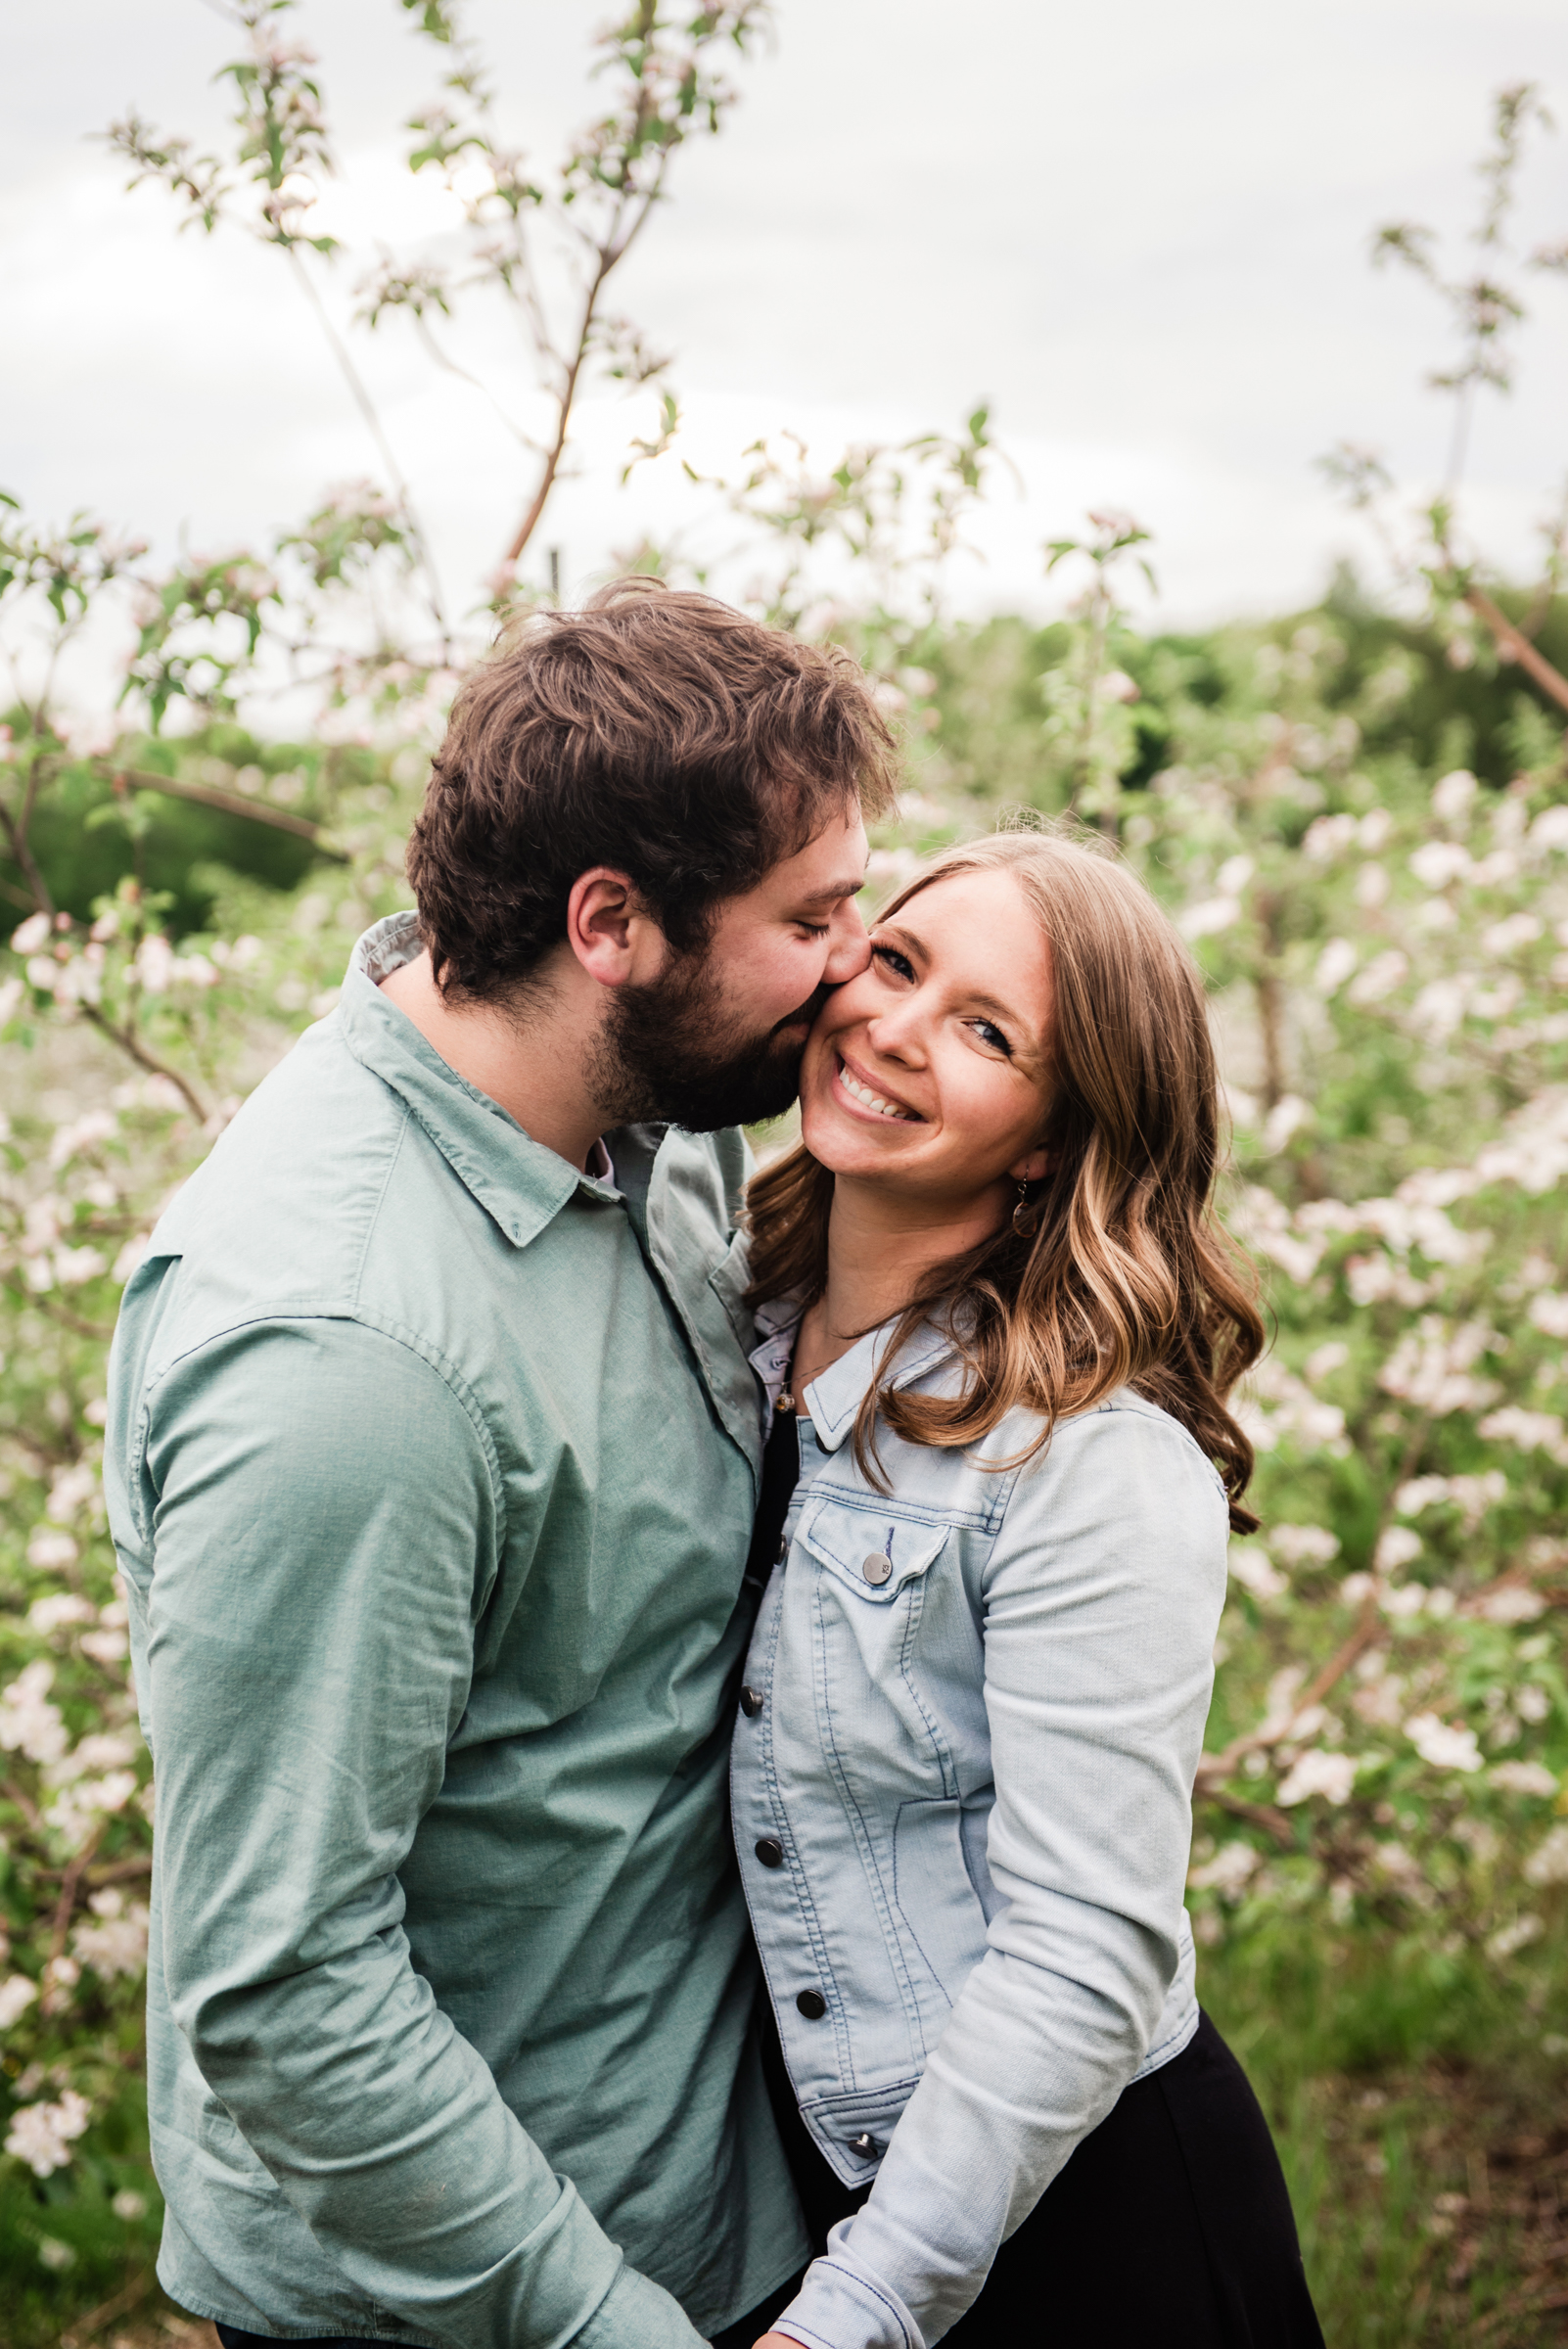 Fox_Farm_Rochester_Couples_Session_JILL_STUDIO_Rochester_NY_Photographer_DSC_7649.jpg